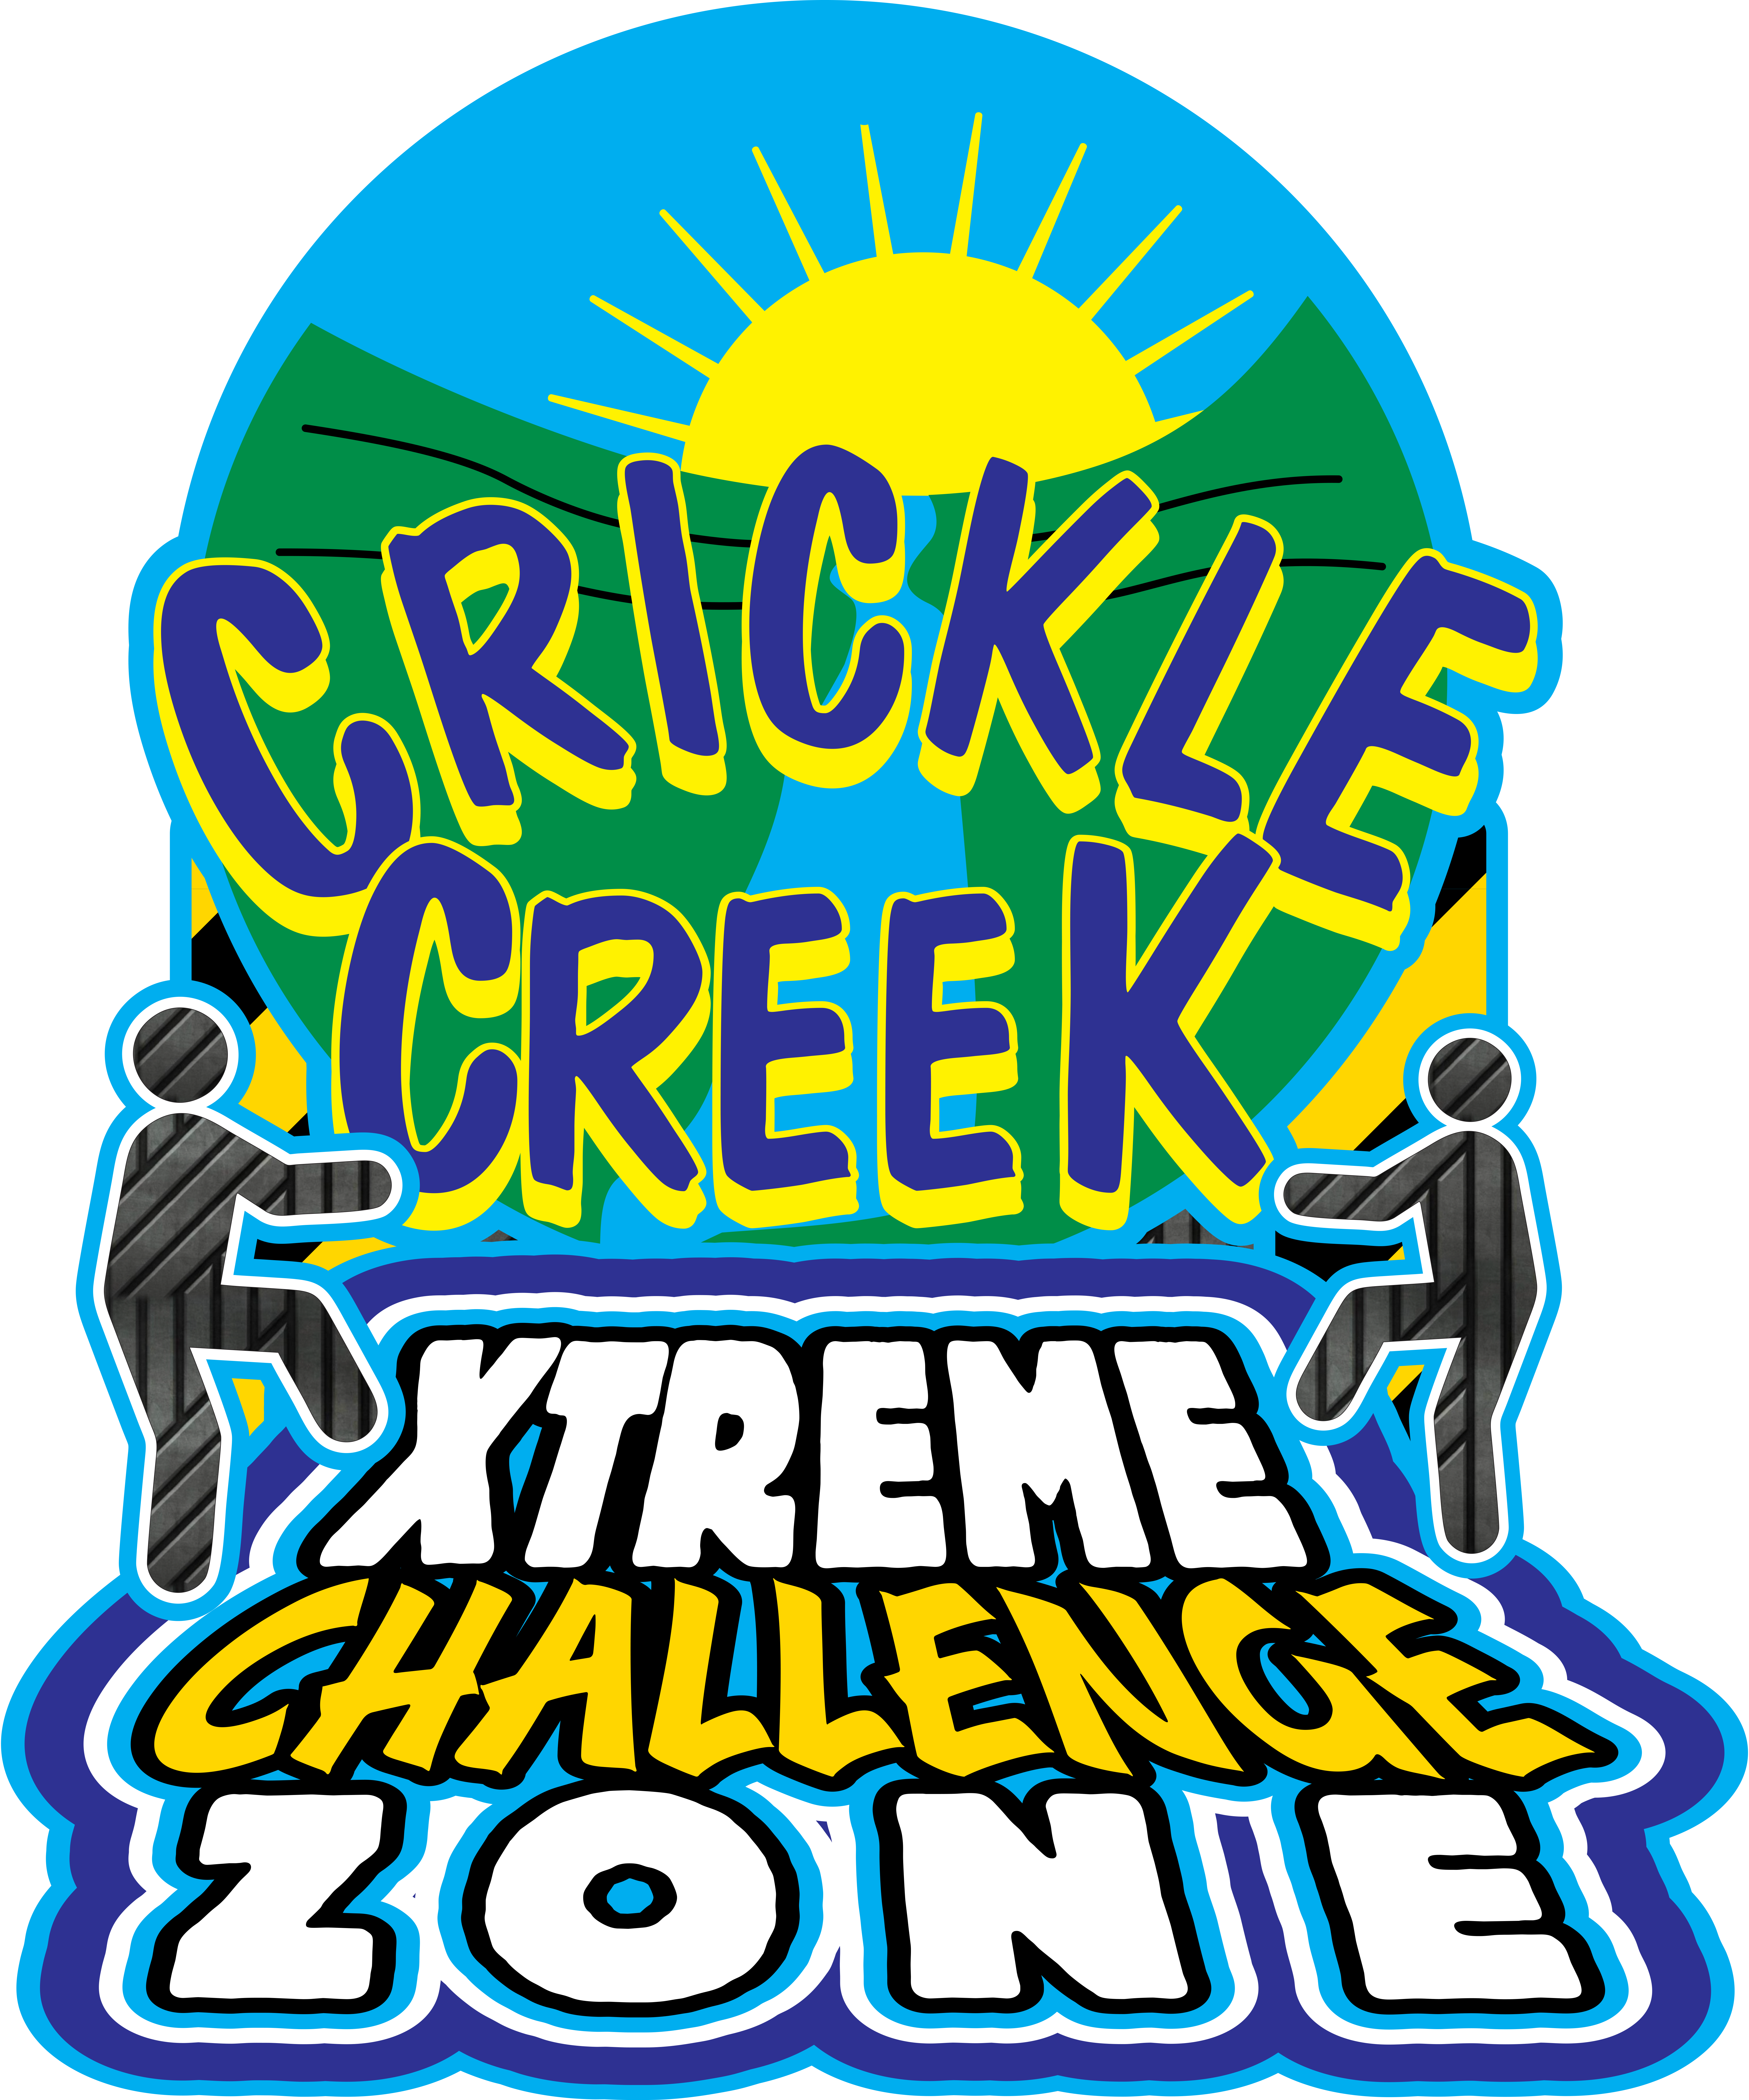 CrickleCreek-icon-xtreme-challenge